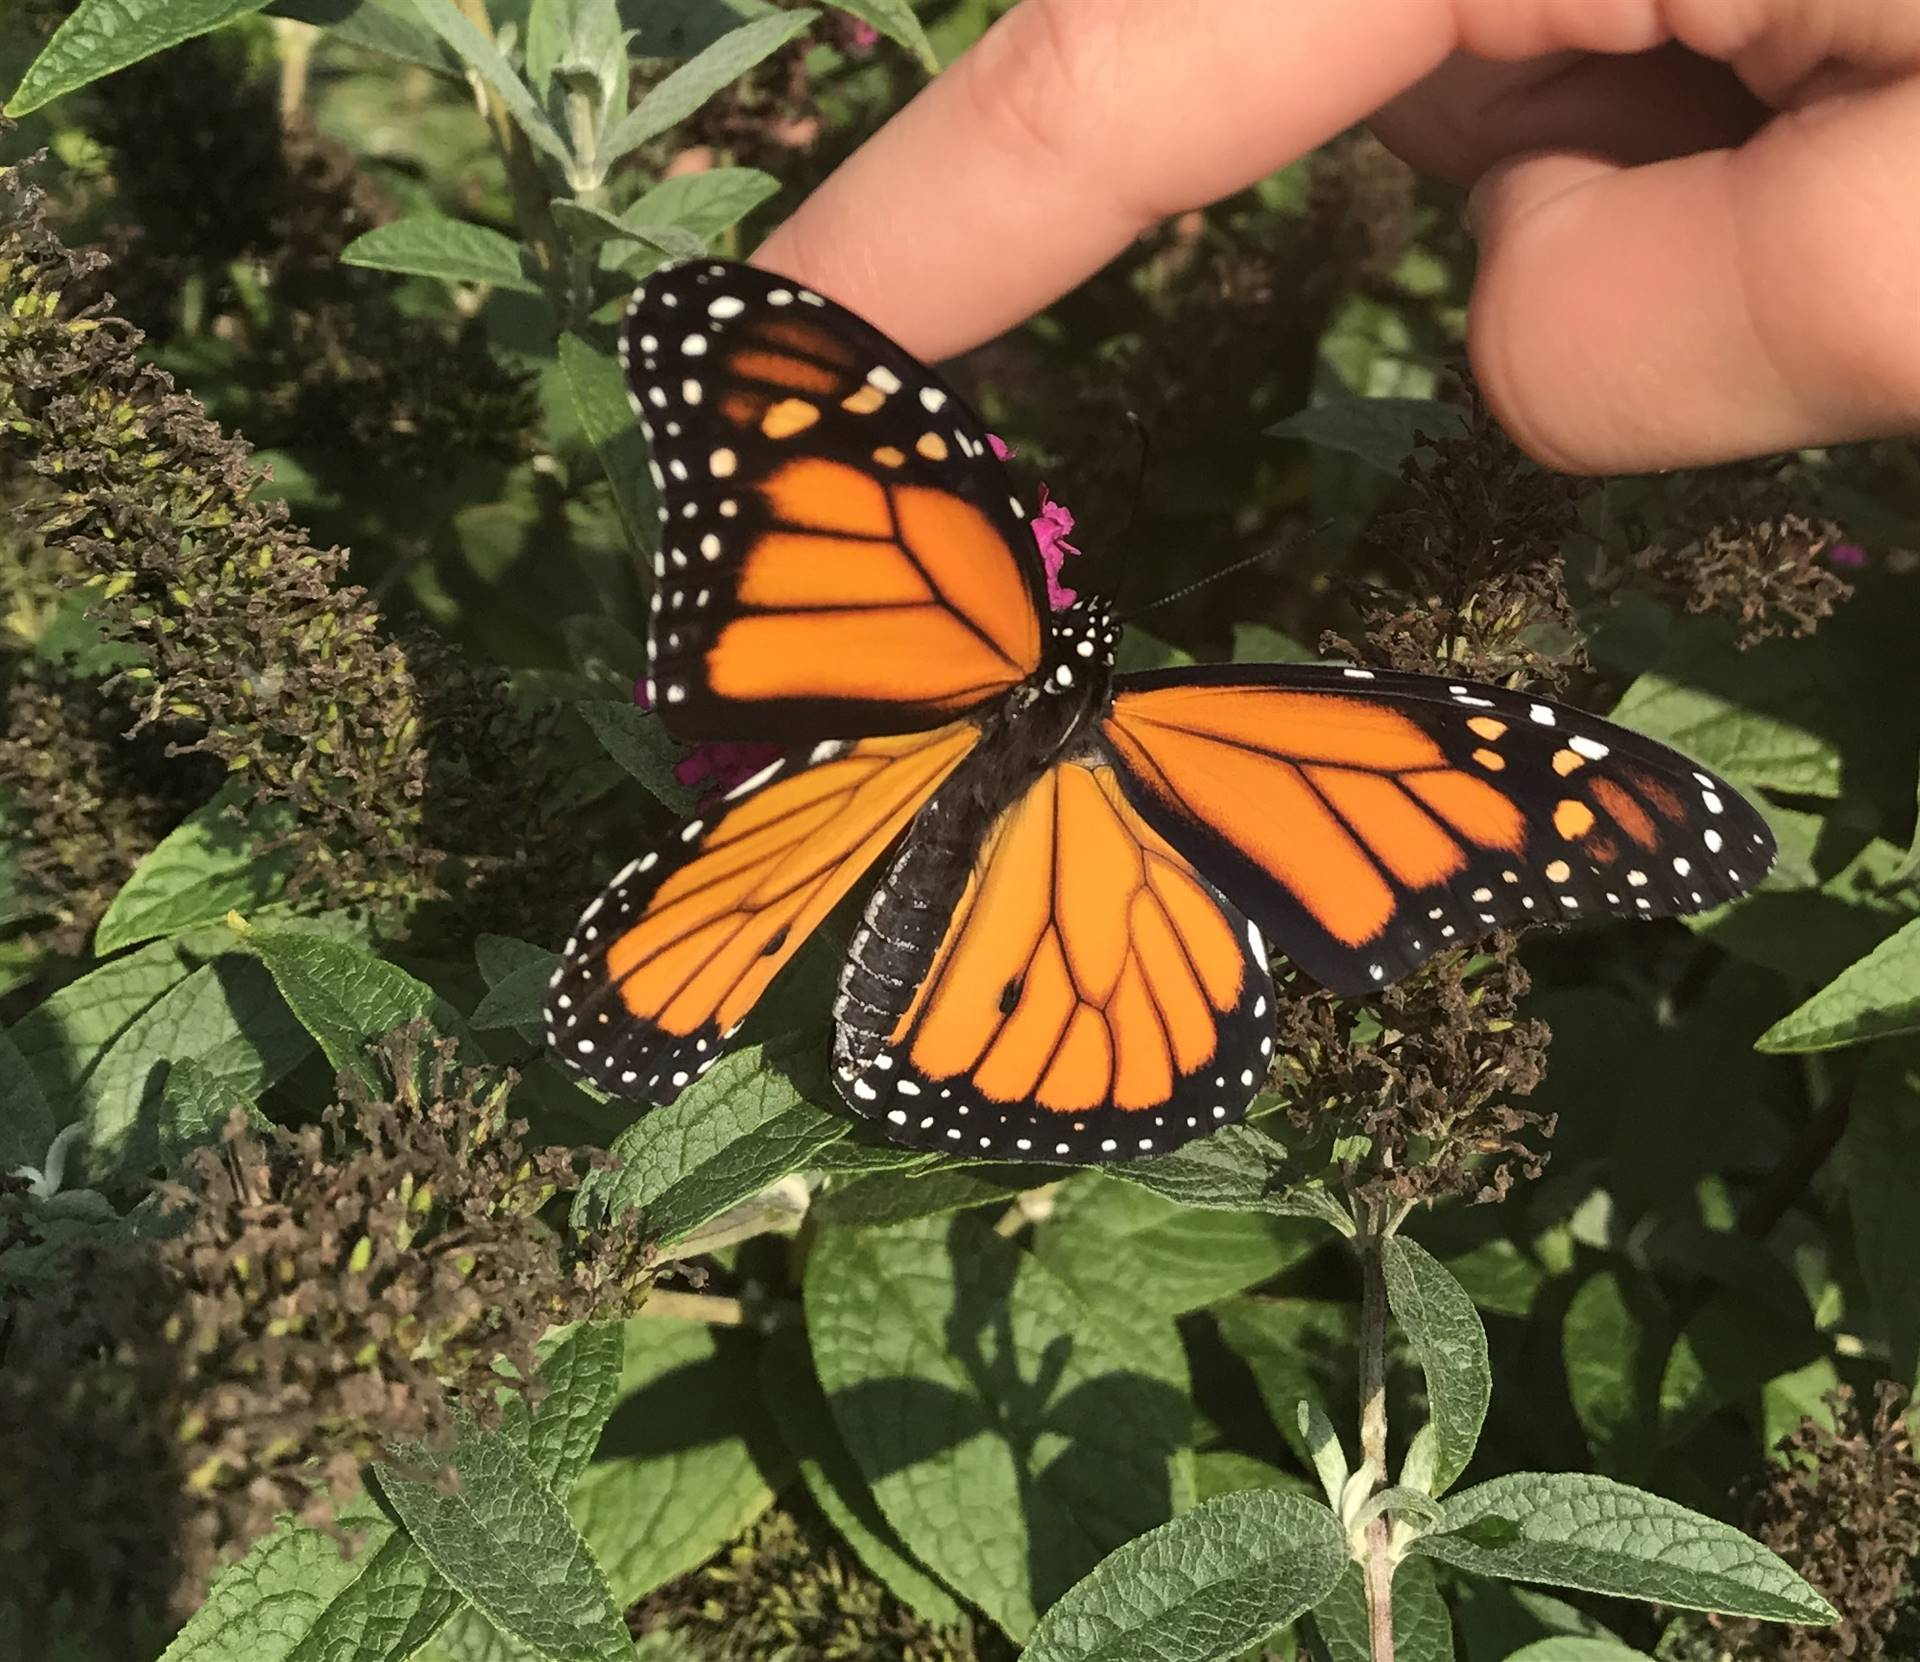 A close up of the monarch butterfly